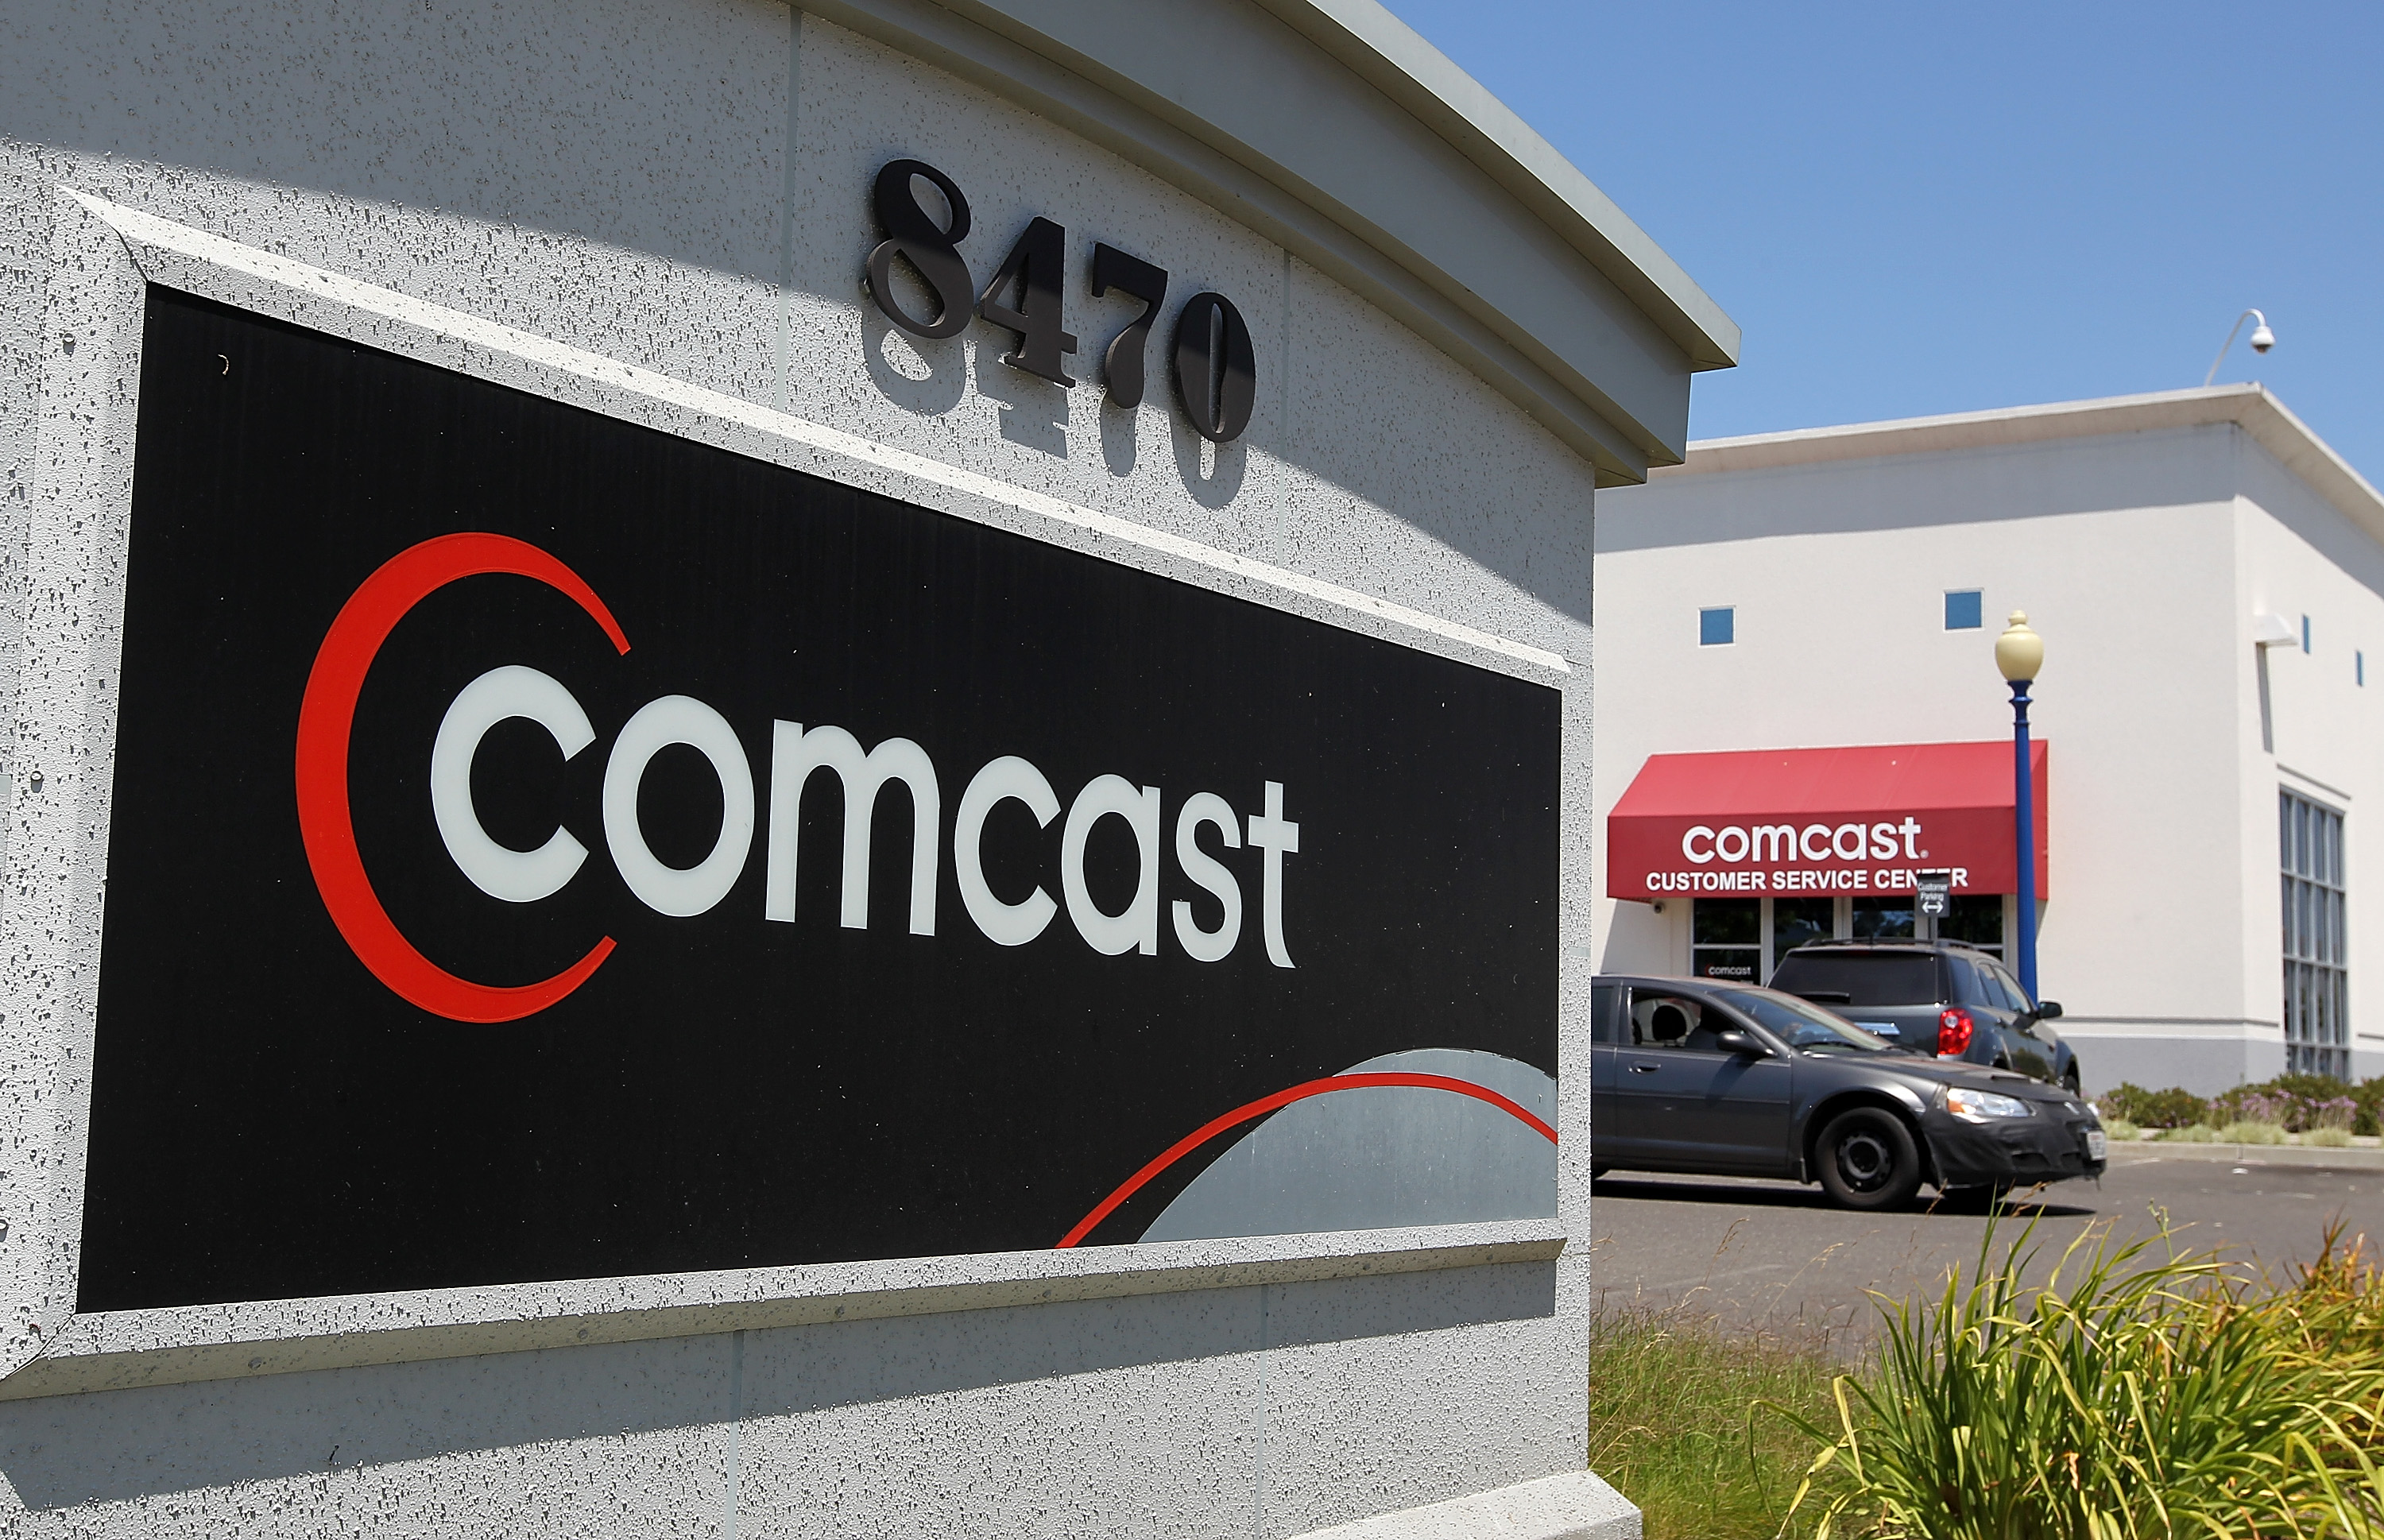 Comcast sued for $100 million for 'near-worthless' service plans